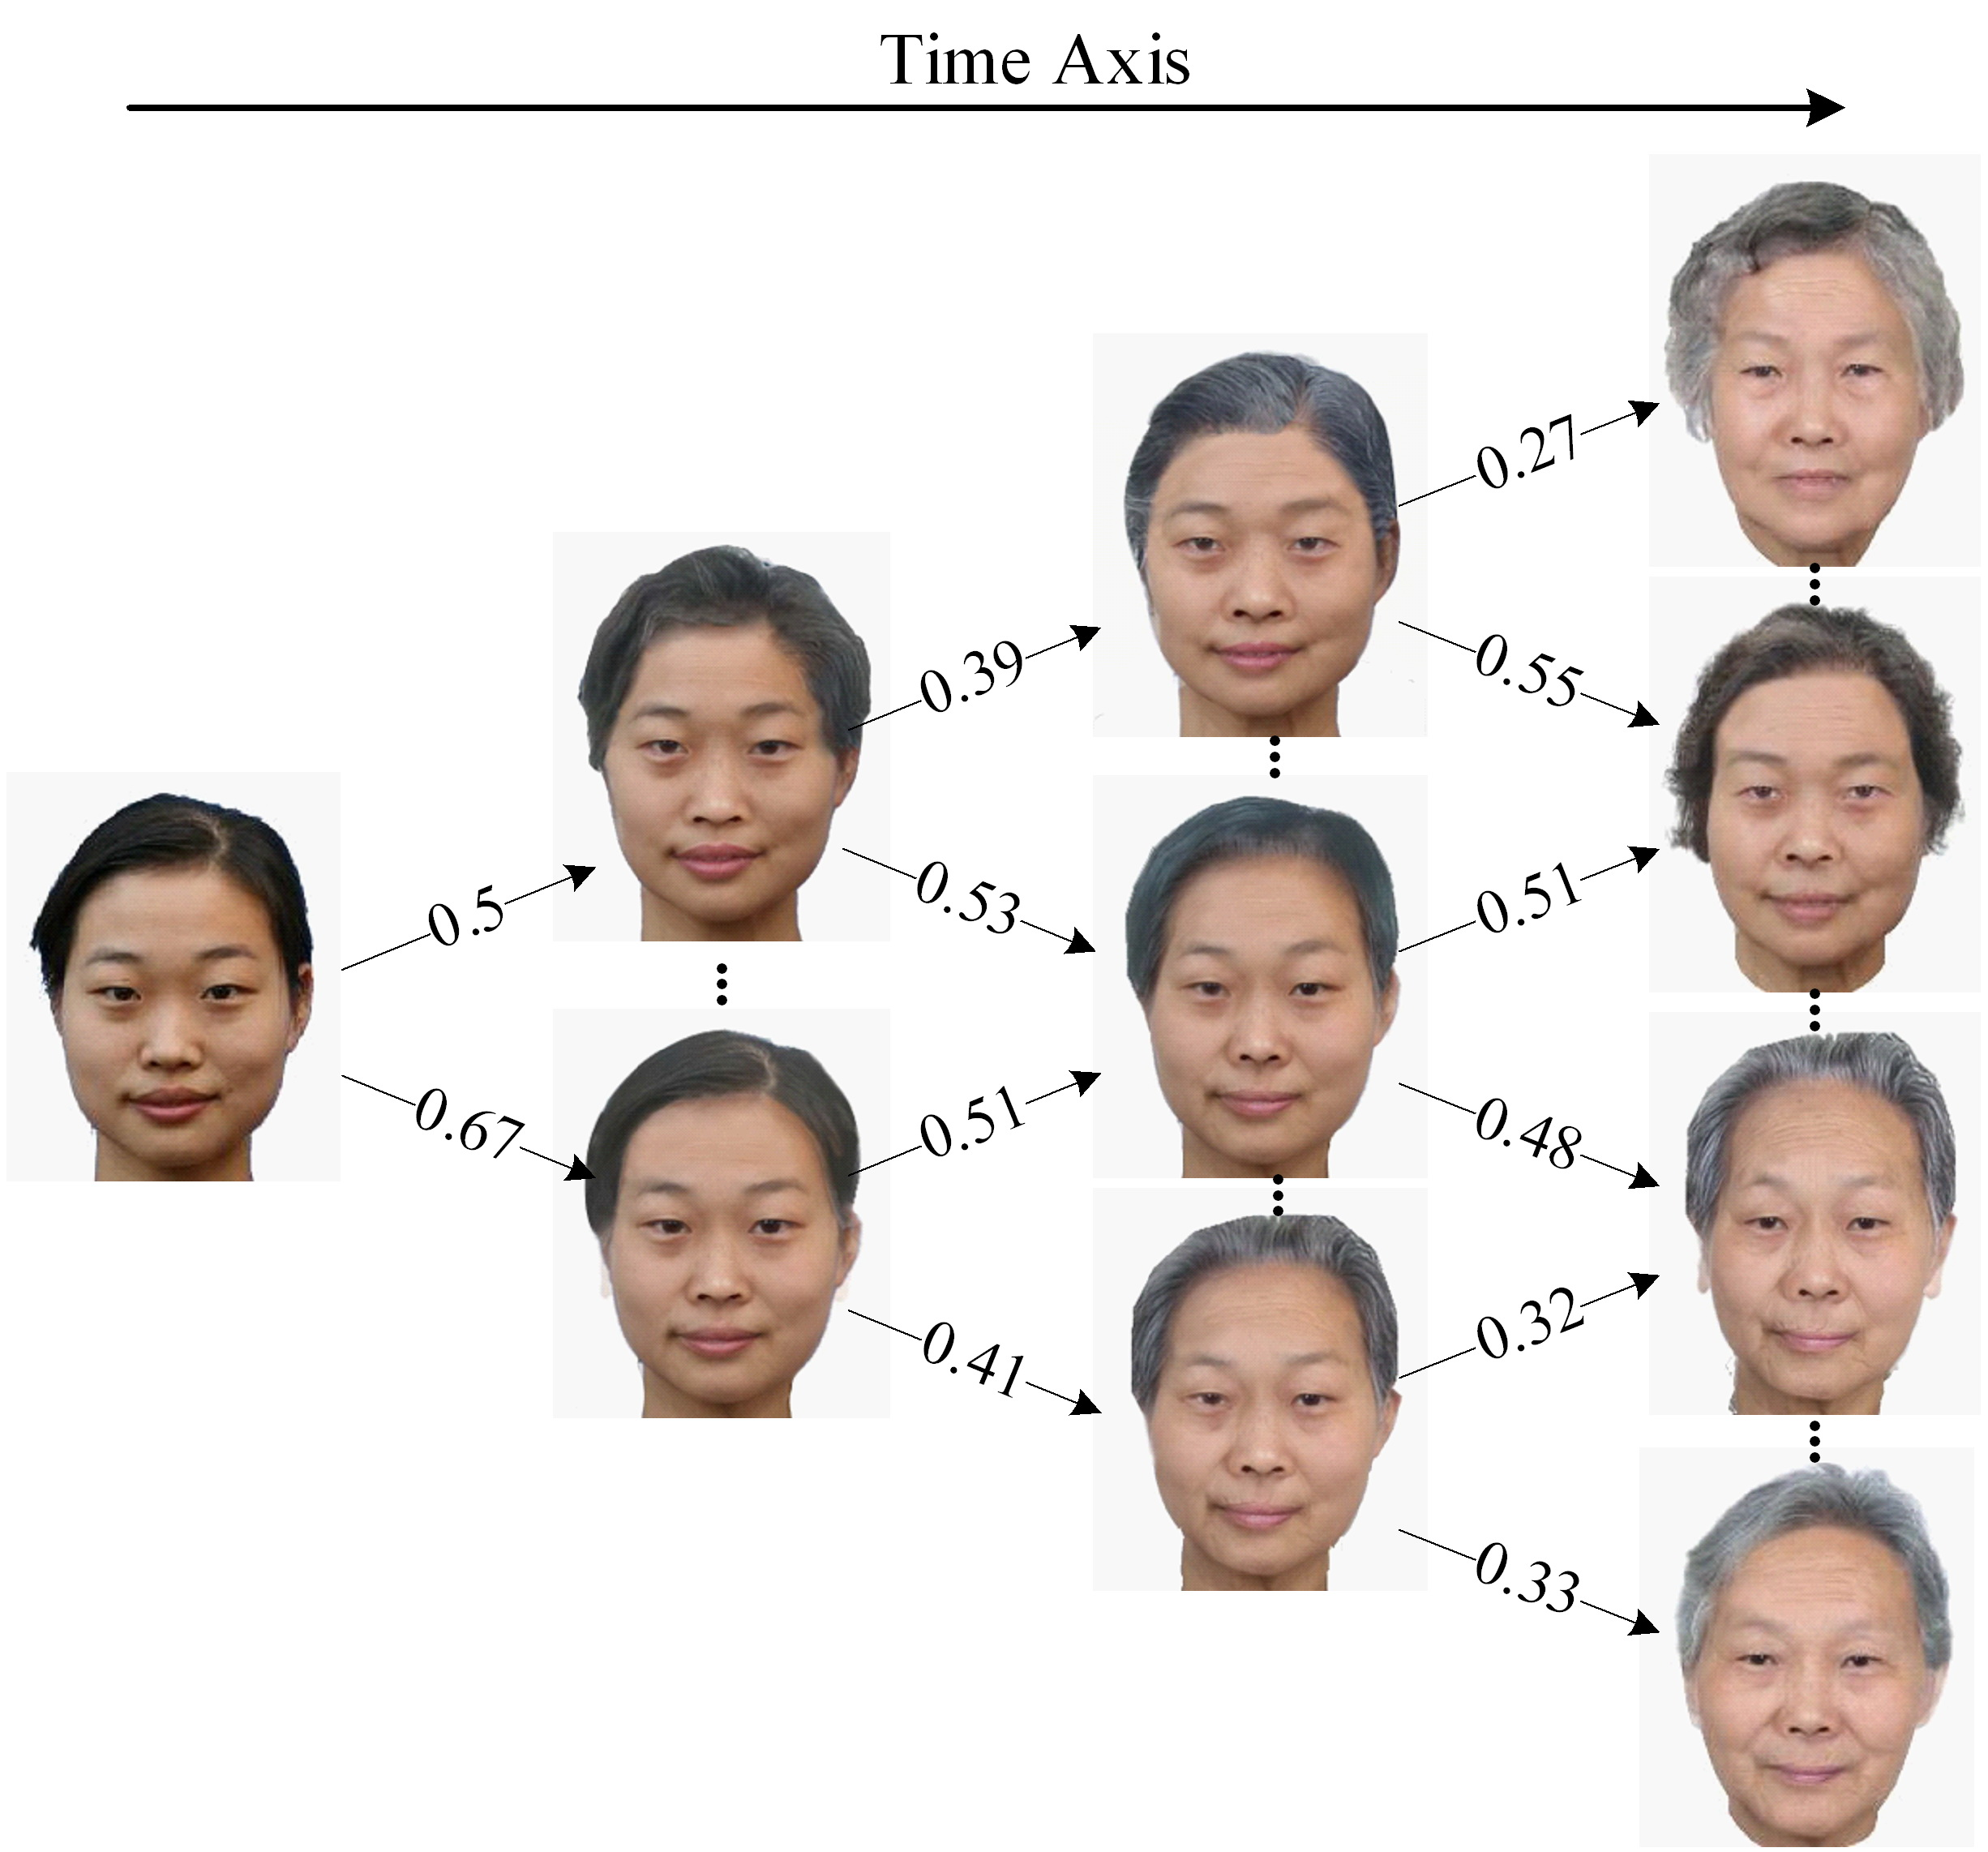 Aging: A Dynamic Model For Face Aging Simulation